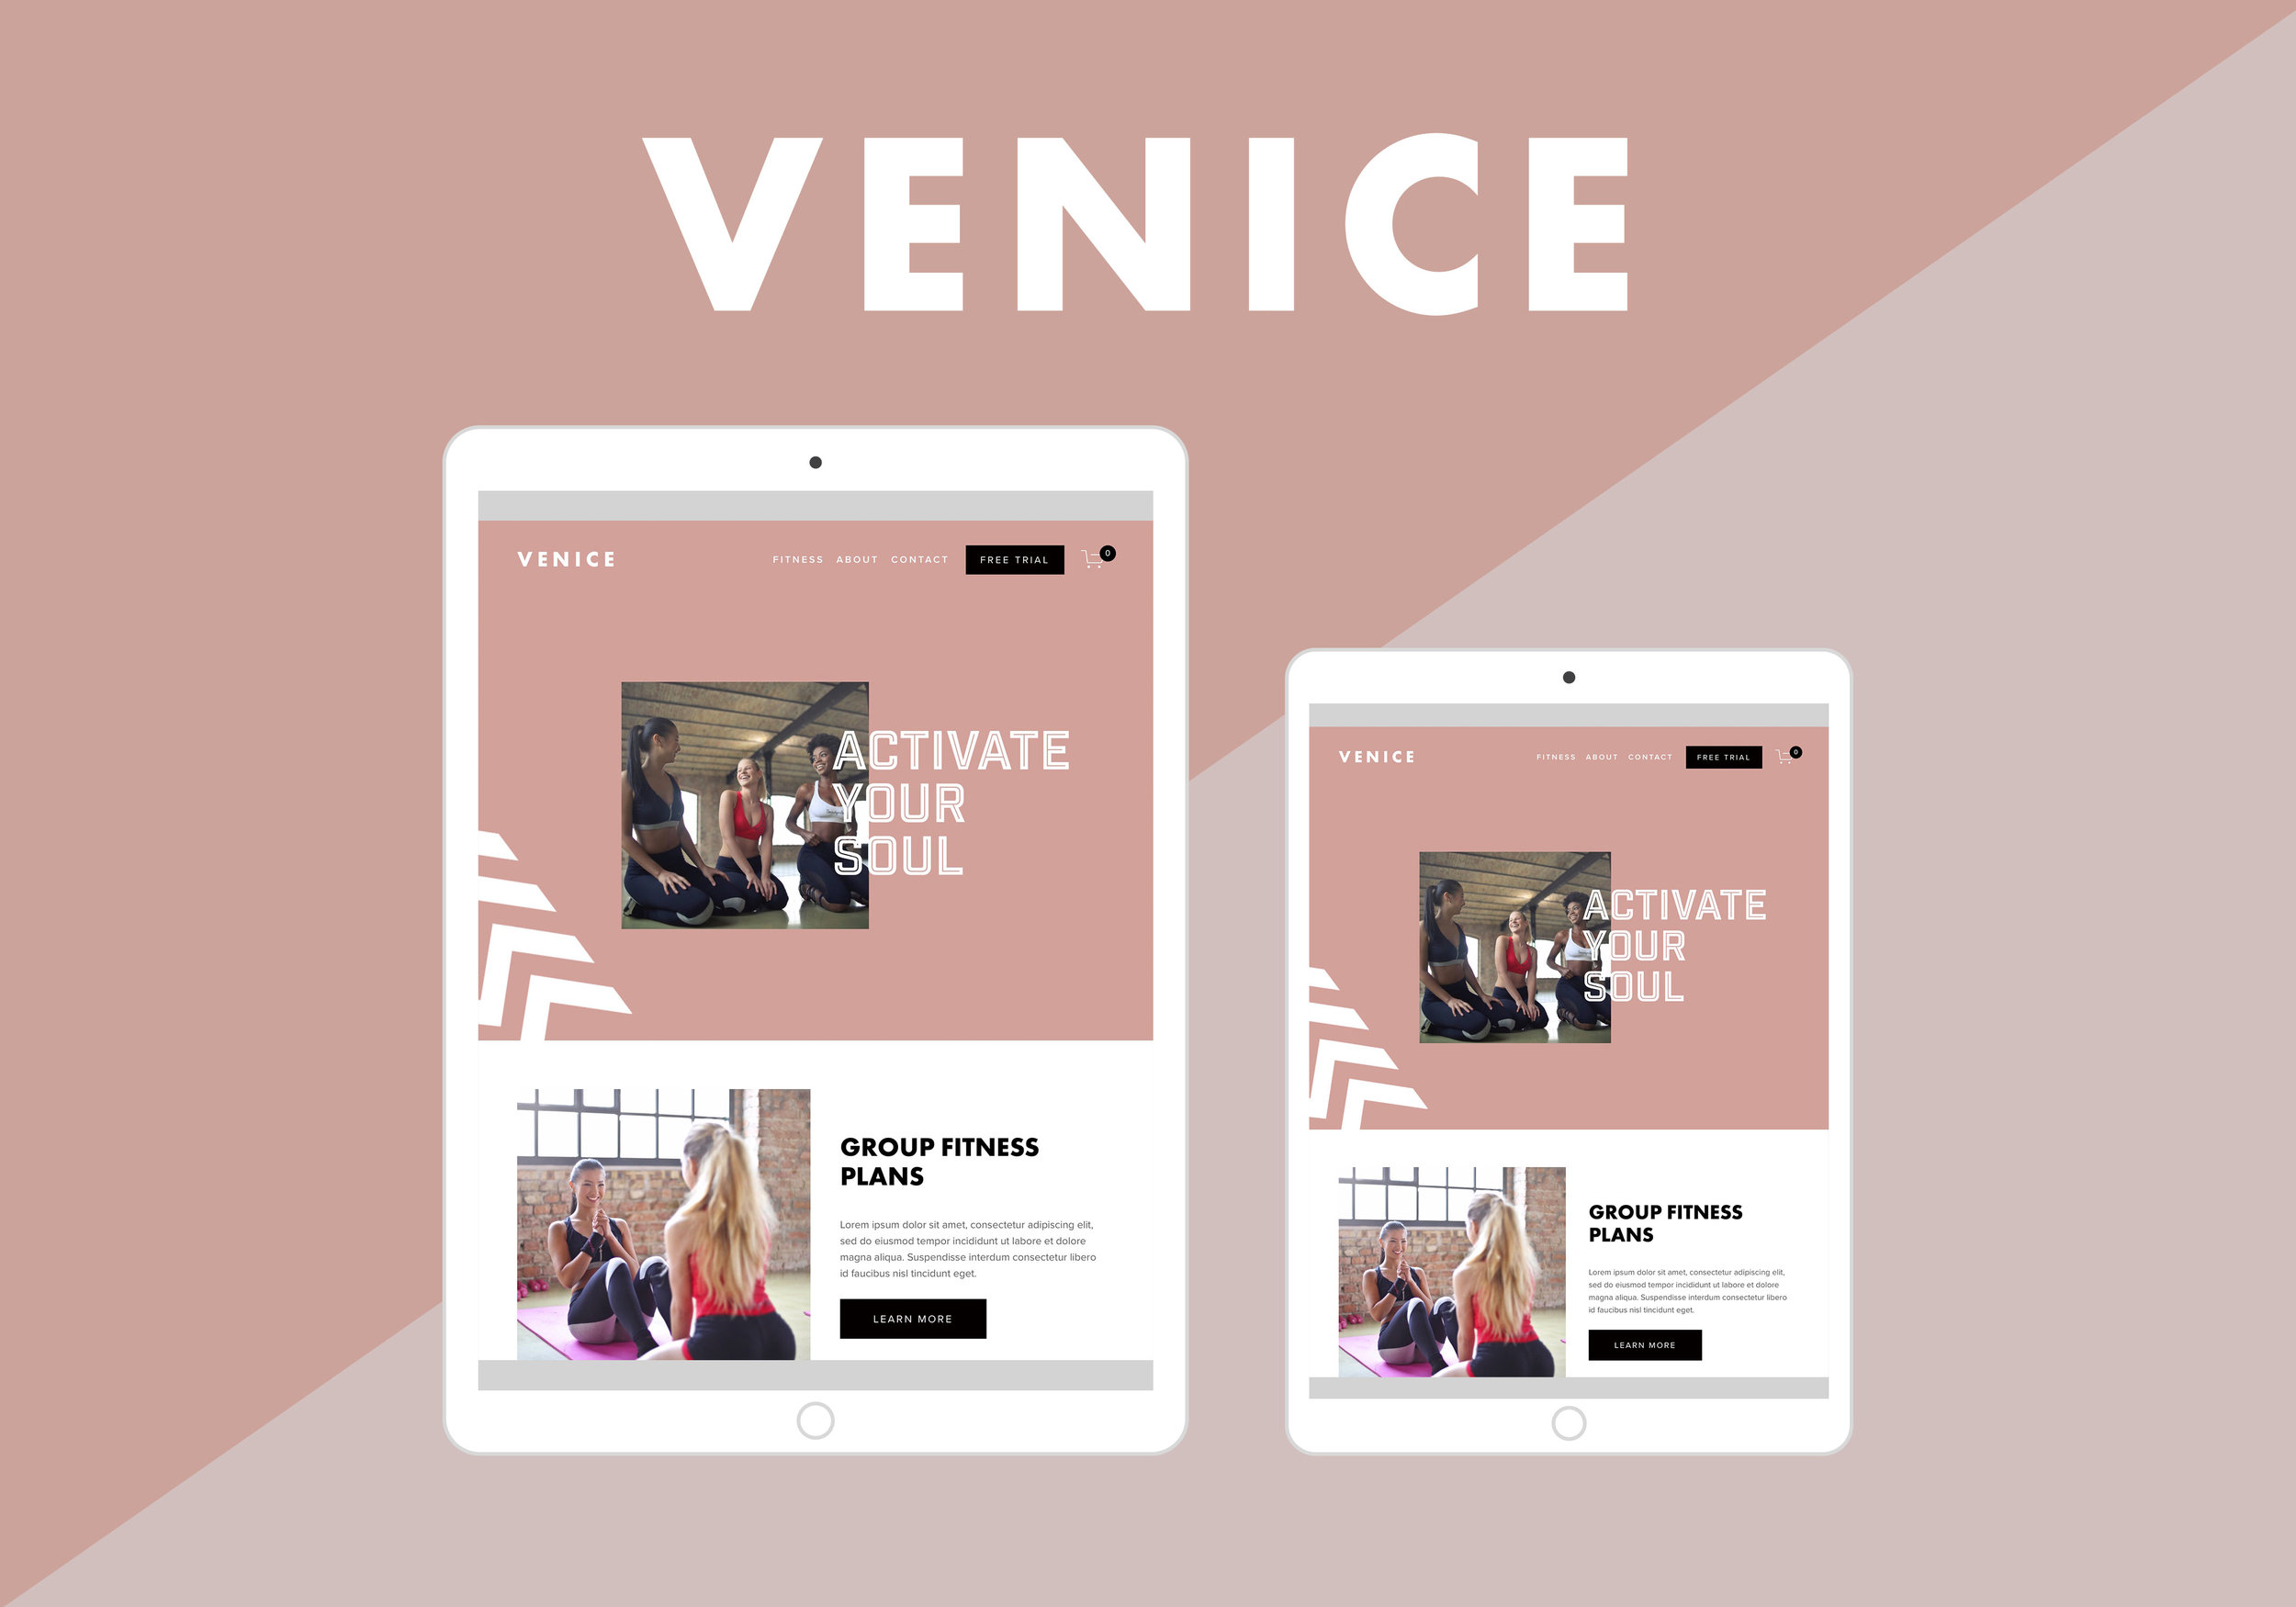 Launch With Erika Squarespace Web Designer   #squarespacetemplates #squarespacedesigner squarespace web design, squarespace designer, website design, website designer in san diego, small business tips, DIY website, women in business, femepreneurs, bucketlist bombshells, squarespace templates, squarespace CSS tricks, beauty and lifestyle, health coach, holistic coach, health practitioner, women in business, latinas in business, web designer, Squarespace tricks